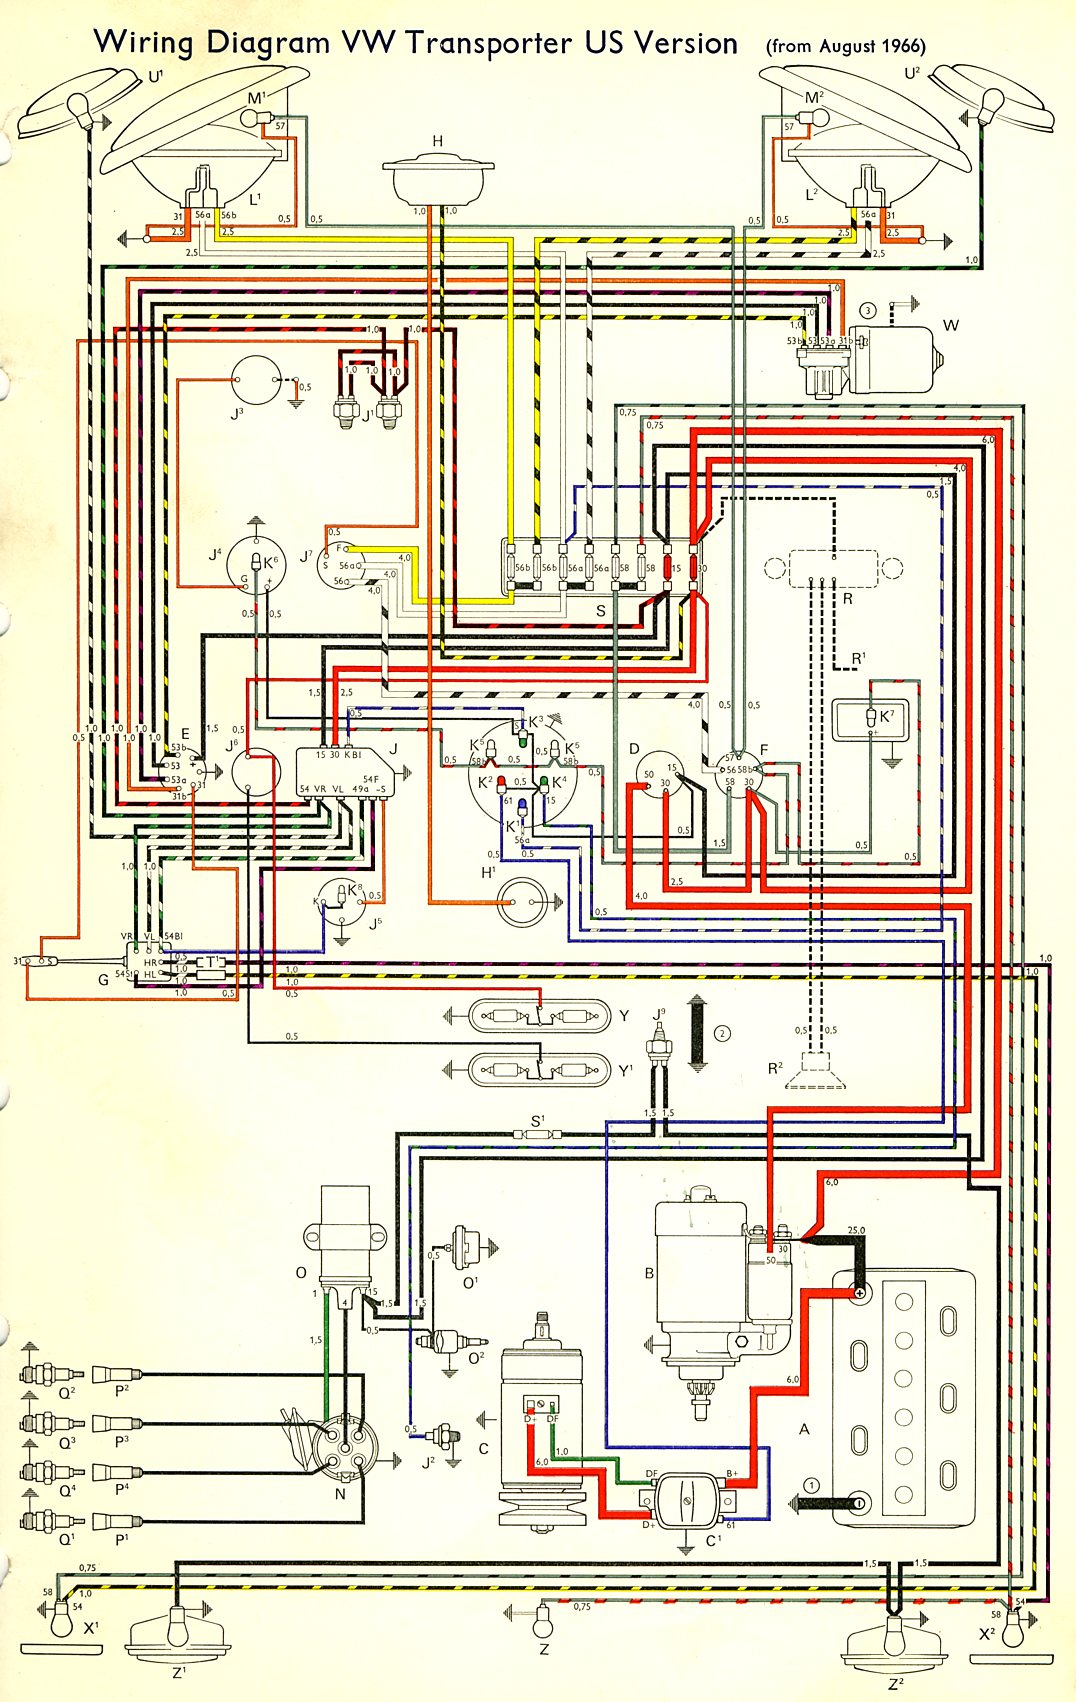 bus_67_USA 1967 bus wiring diagram (usa) thegoldenbug com 1971 vw bus wiring diagram at bayanpartner.co